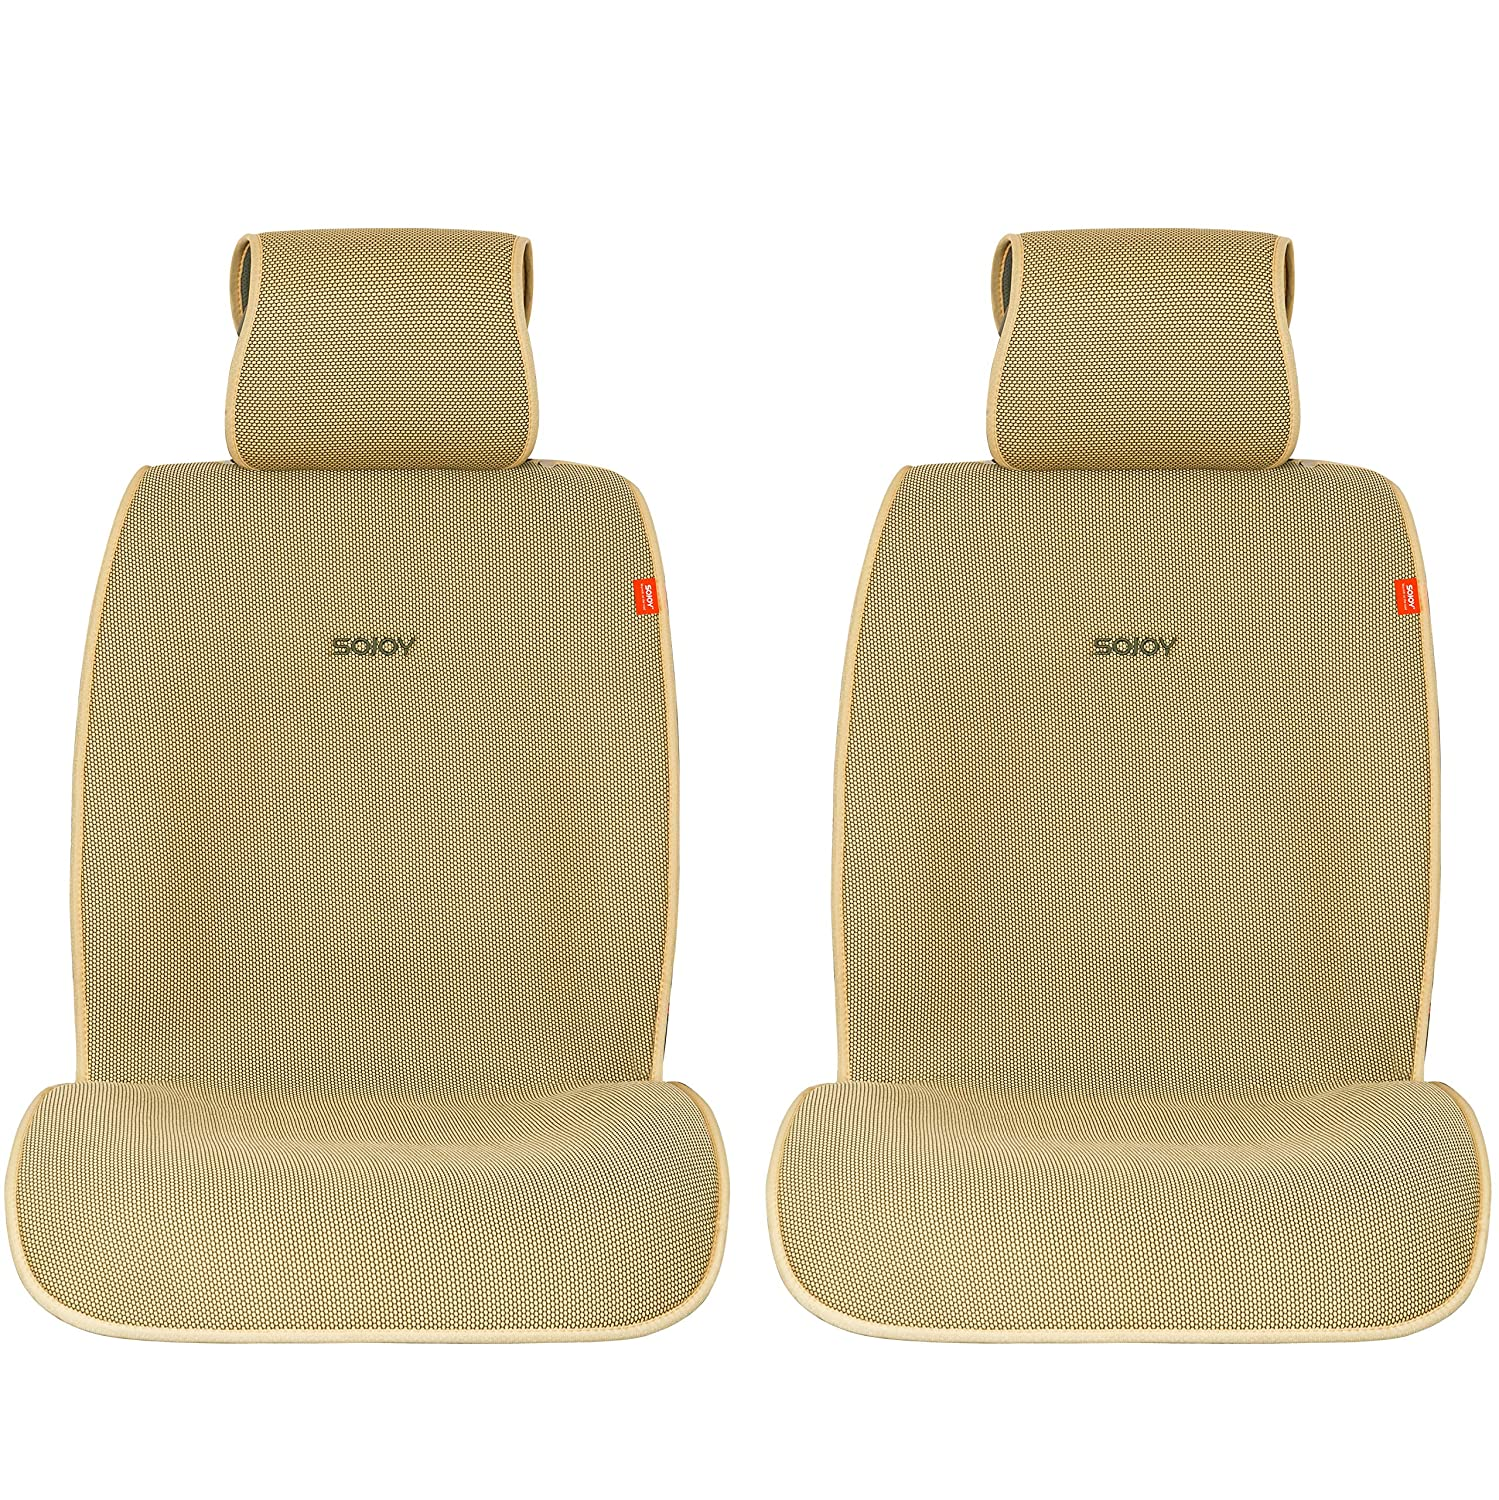 Sojoy Summer Cooling Four Seasons Car Seat Cushions for Front Two Seats Comes with 2 Pieces - Honeycomb Cloth (Cream and Tan)